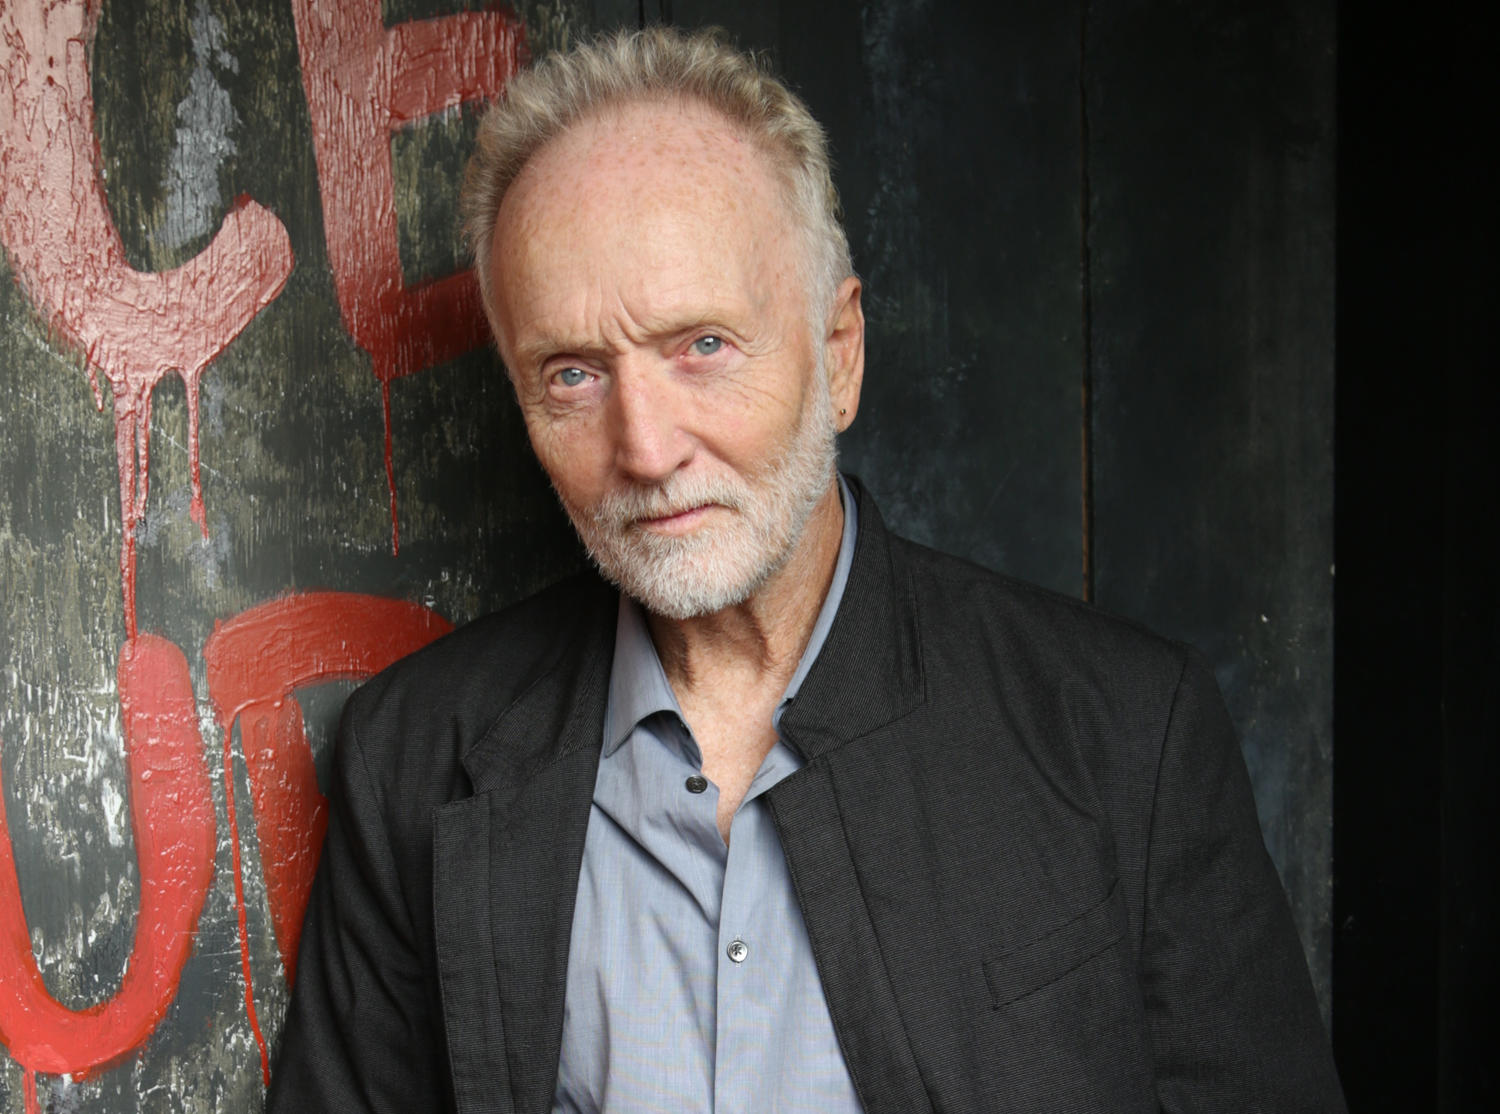 Portrait photo of Tobin Bell from the SAW franchise